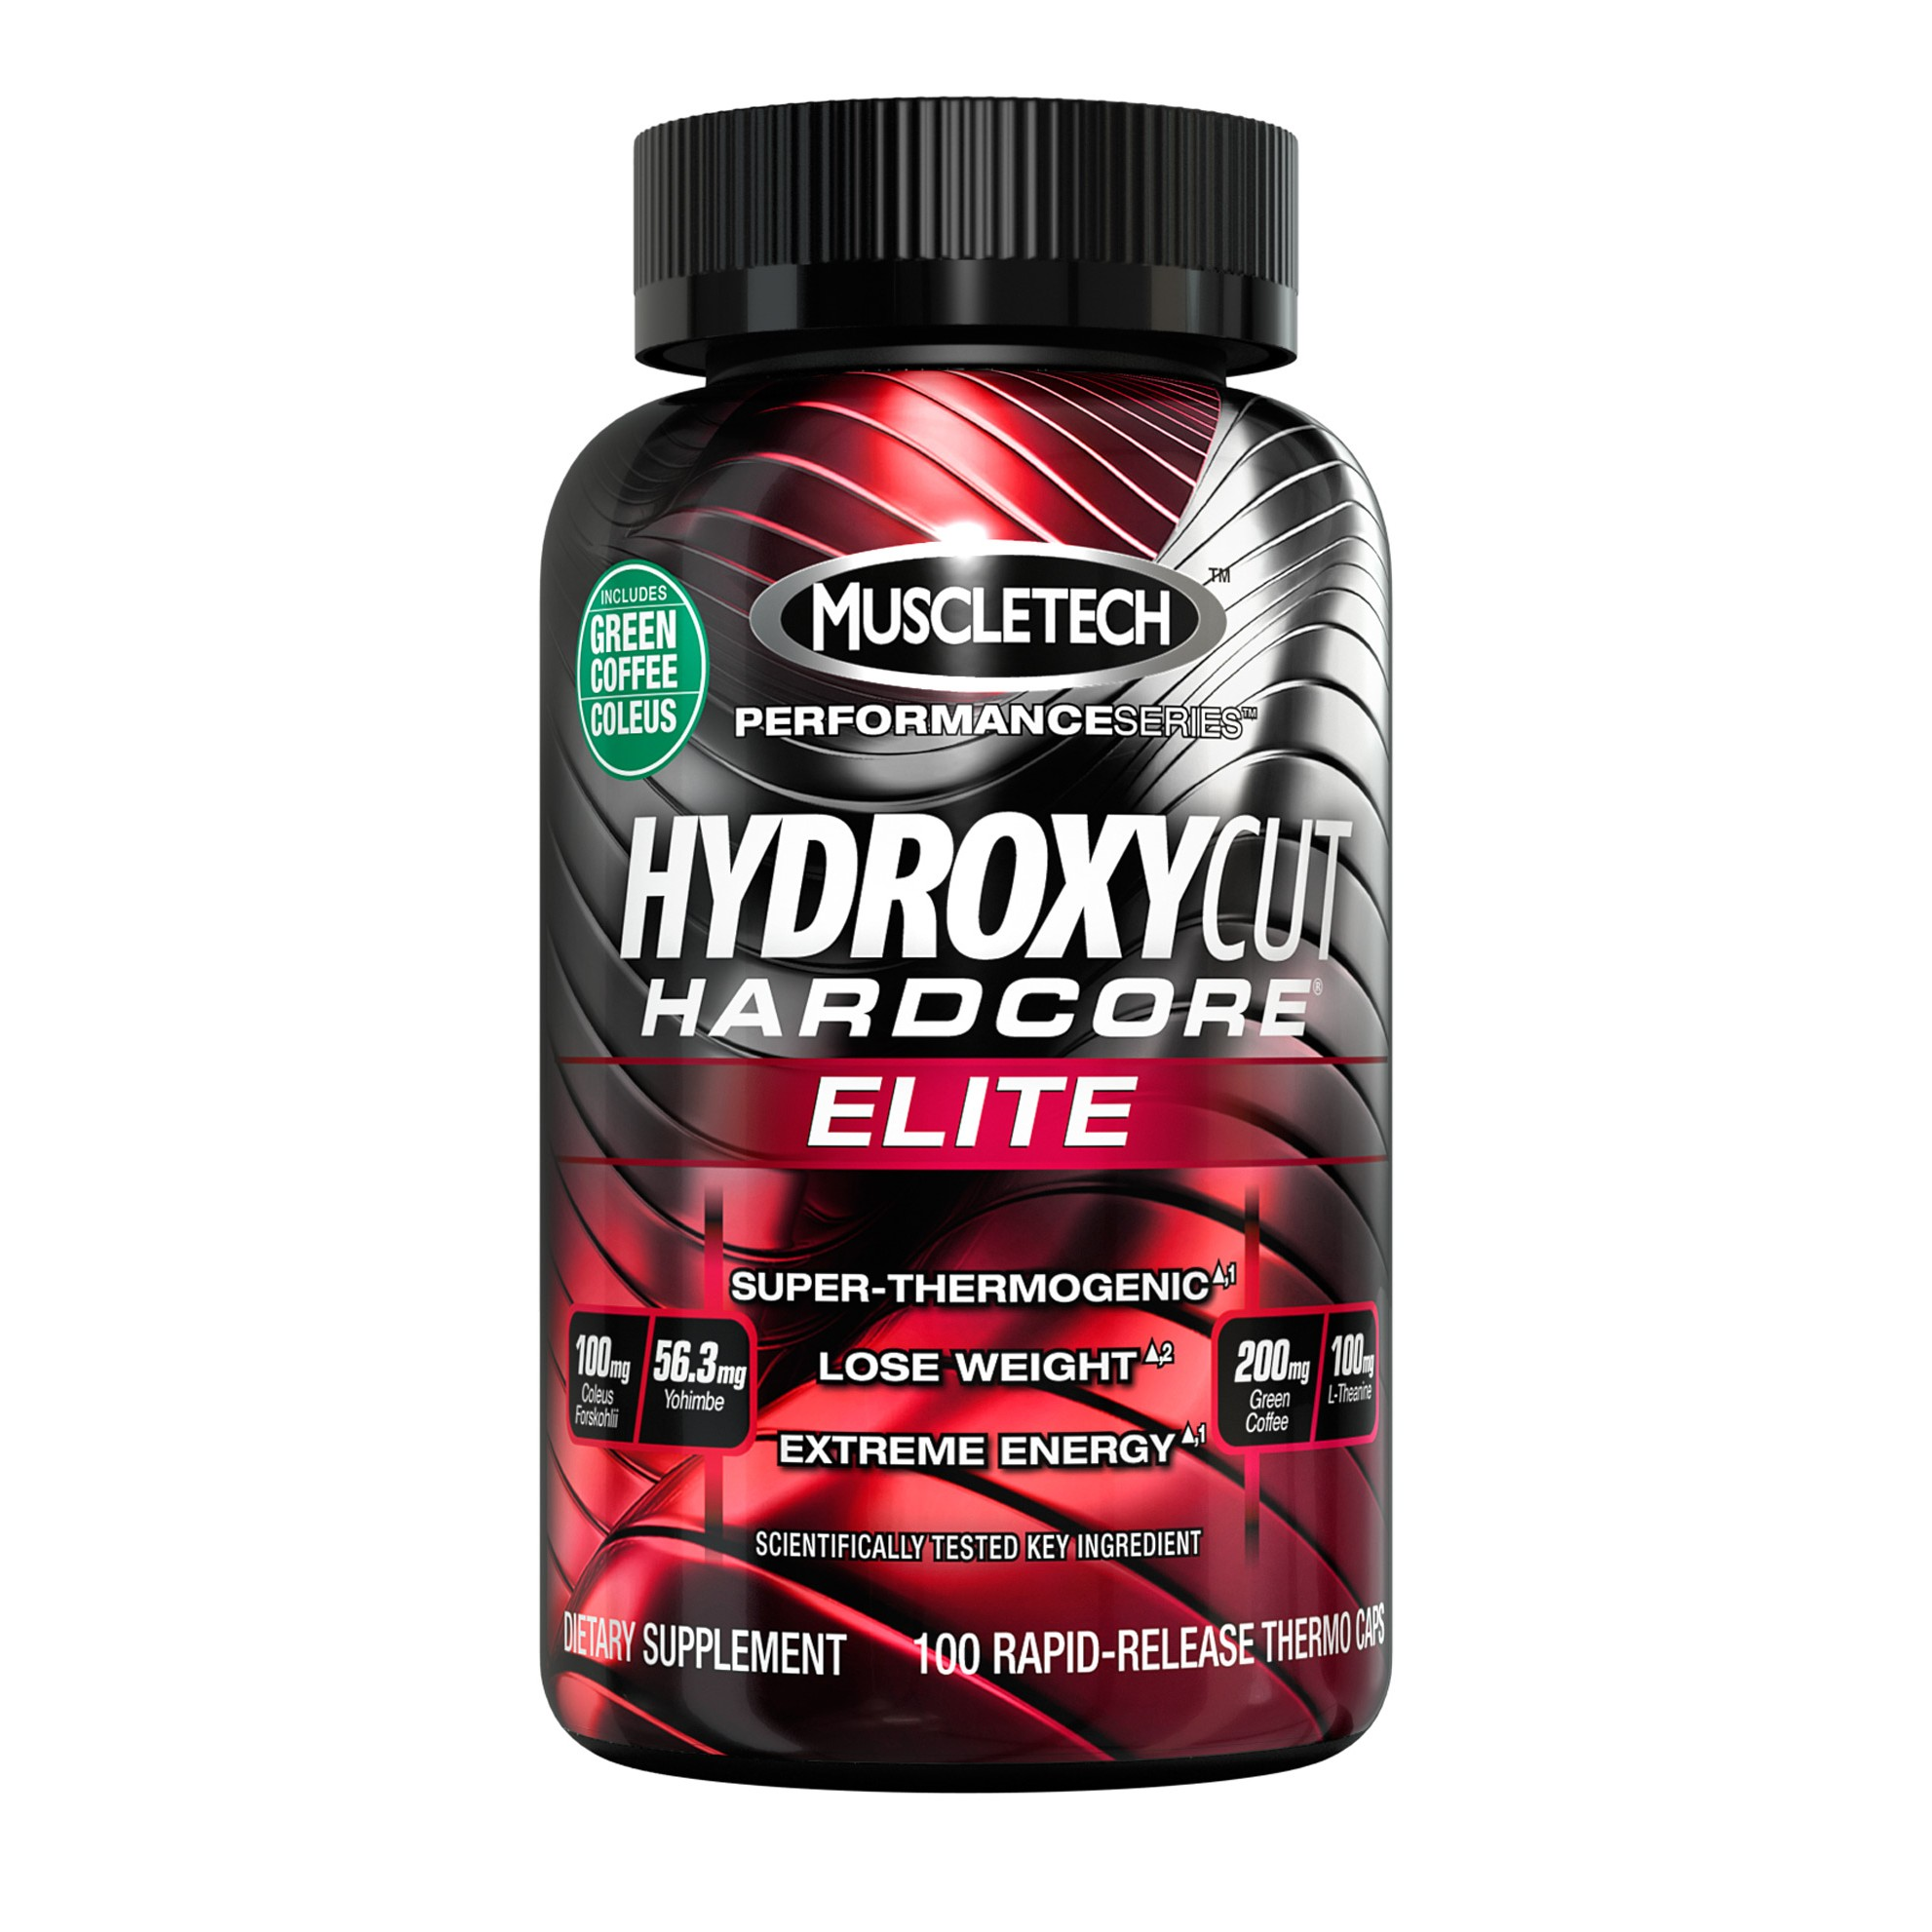 Hydroxycut Hardcore Elite 100 caps MUSCLETECH